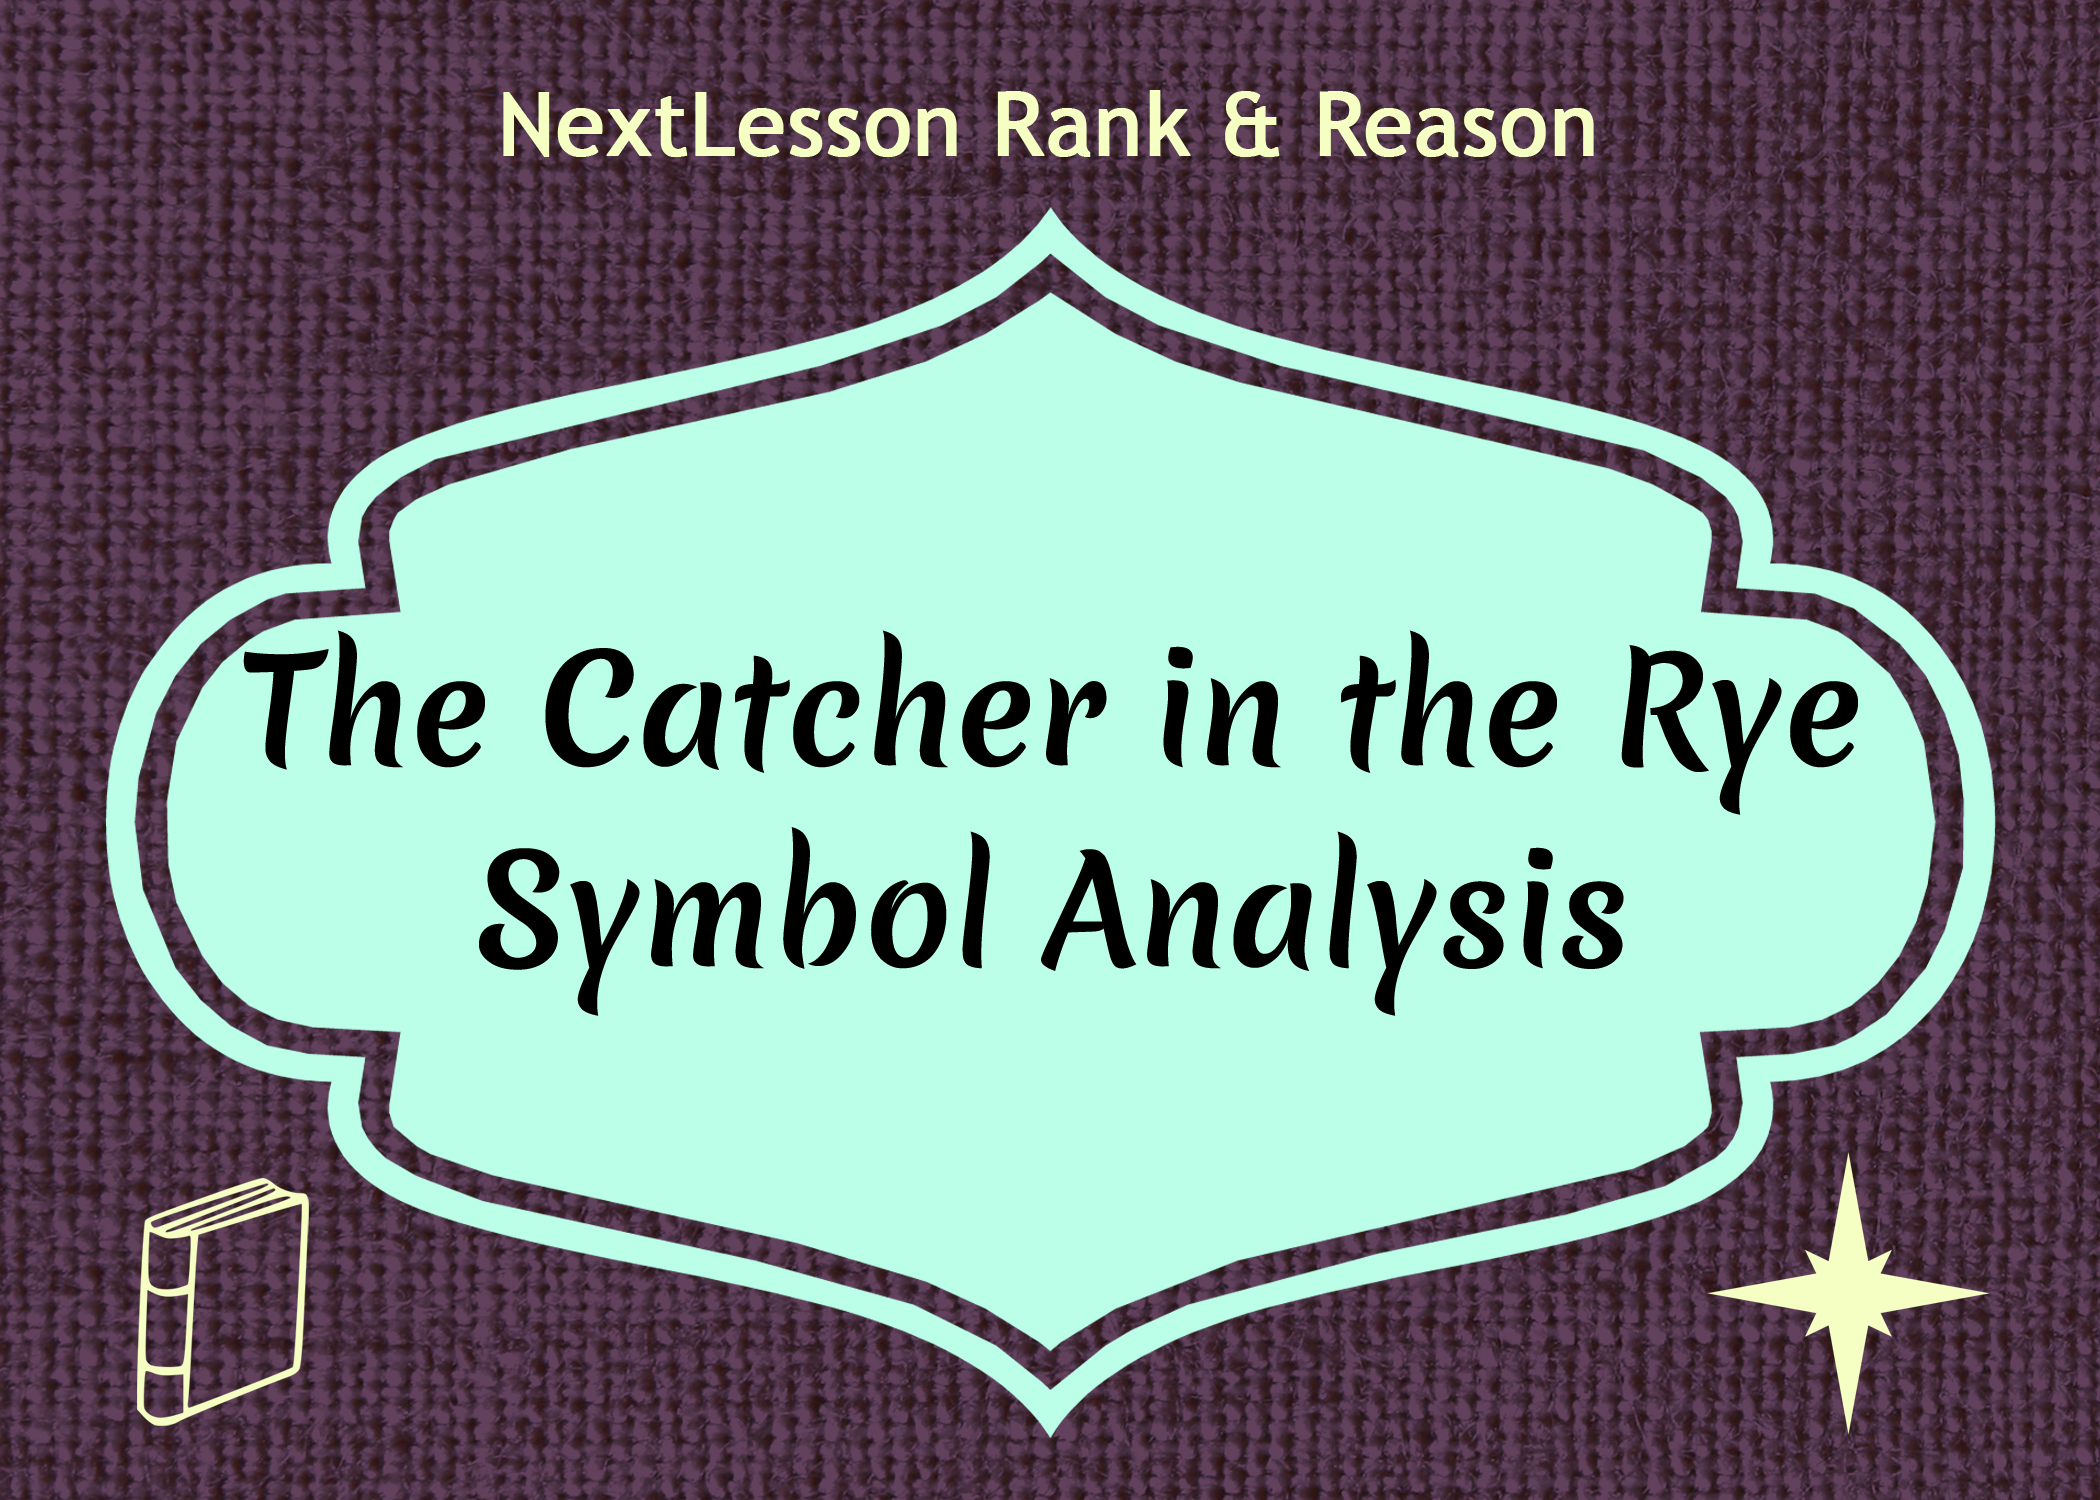 an analysis of adolescence in the catcher in the rye a novel by j d salinger An analysis on the relevance of jd salingers the catcher in the rye in modern times  the language salinger uses in the novel is immediately  conclusion analysis.